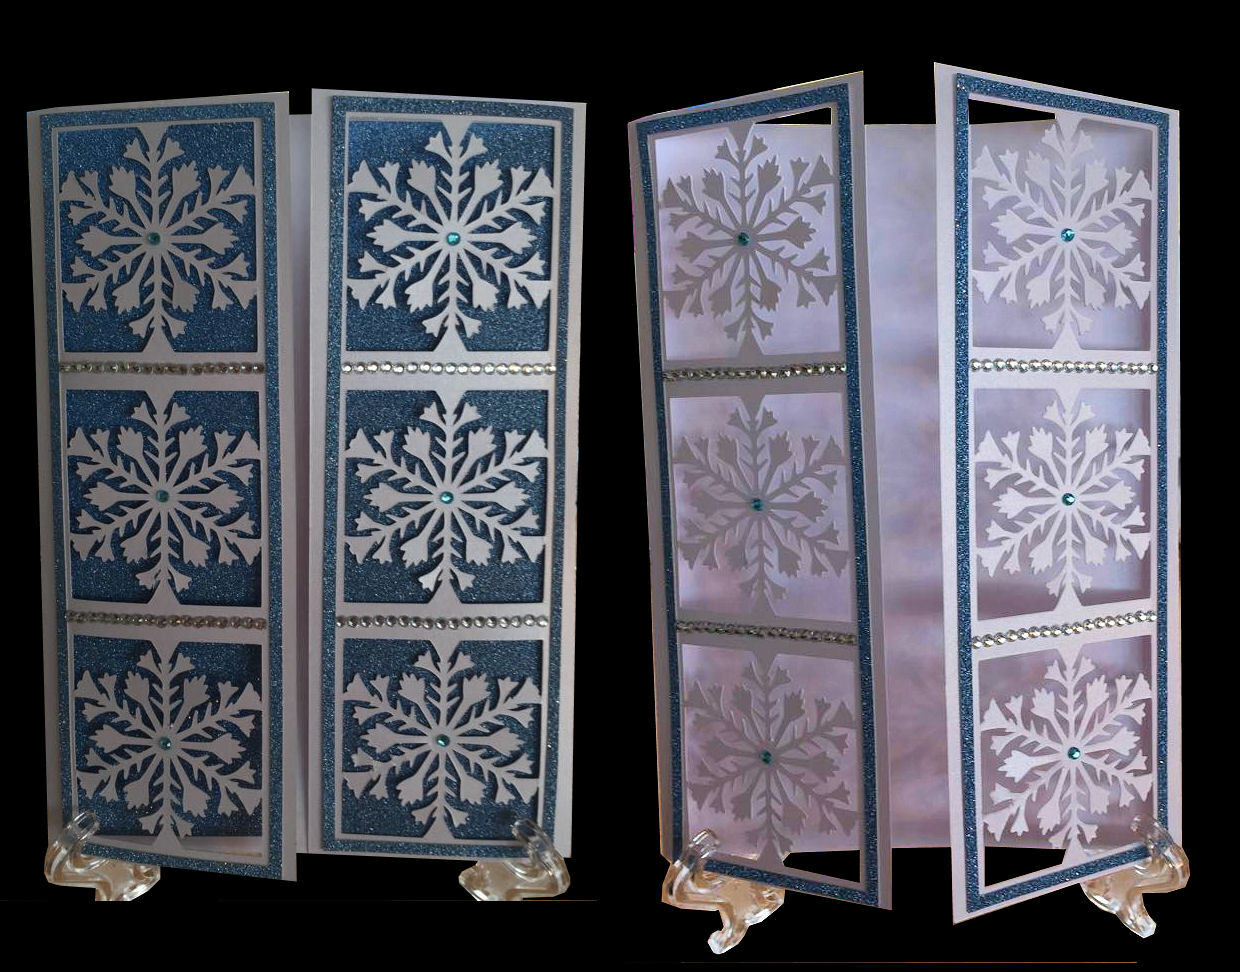 Frozen Snowflake Christmas panelled Gatefold Card